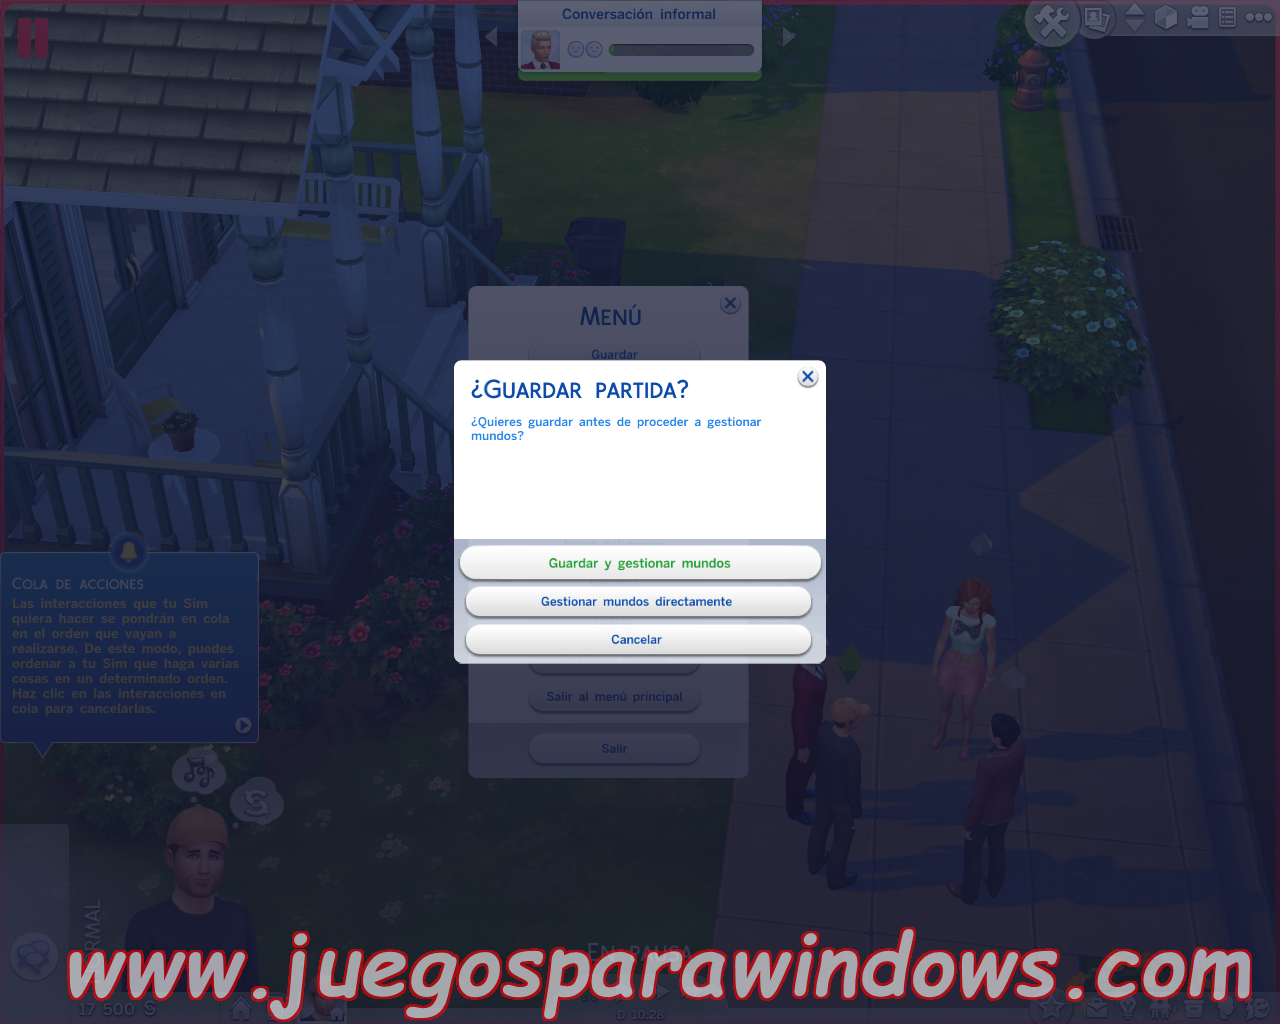 Los Sims 4 Digital Deluxe Edition ESPAÑOL PC Full + Update v1.4.83.1010 Incl DLC (RELOADED) 23